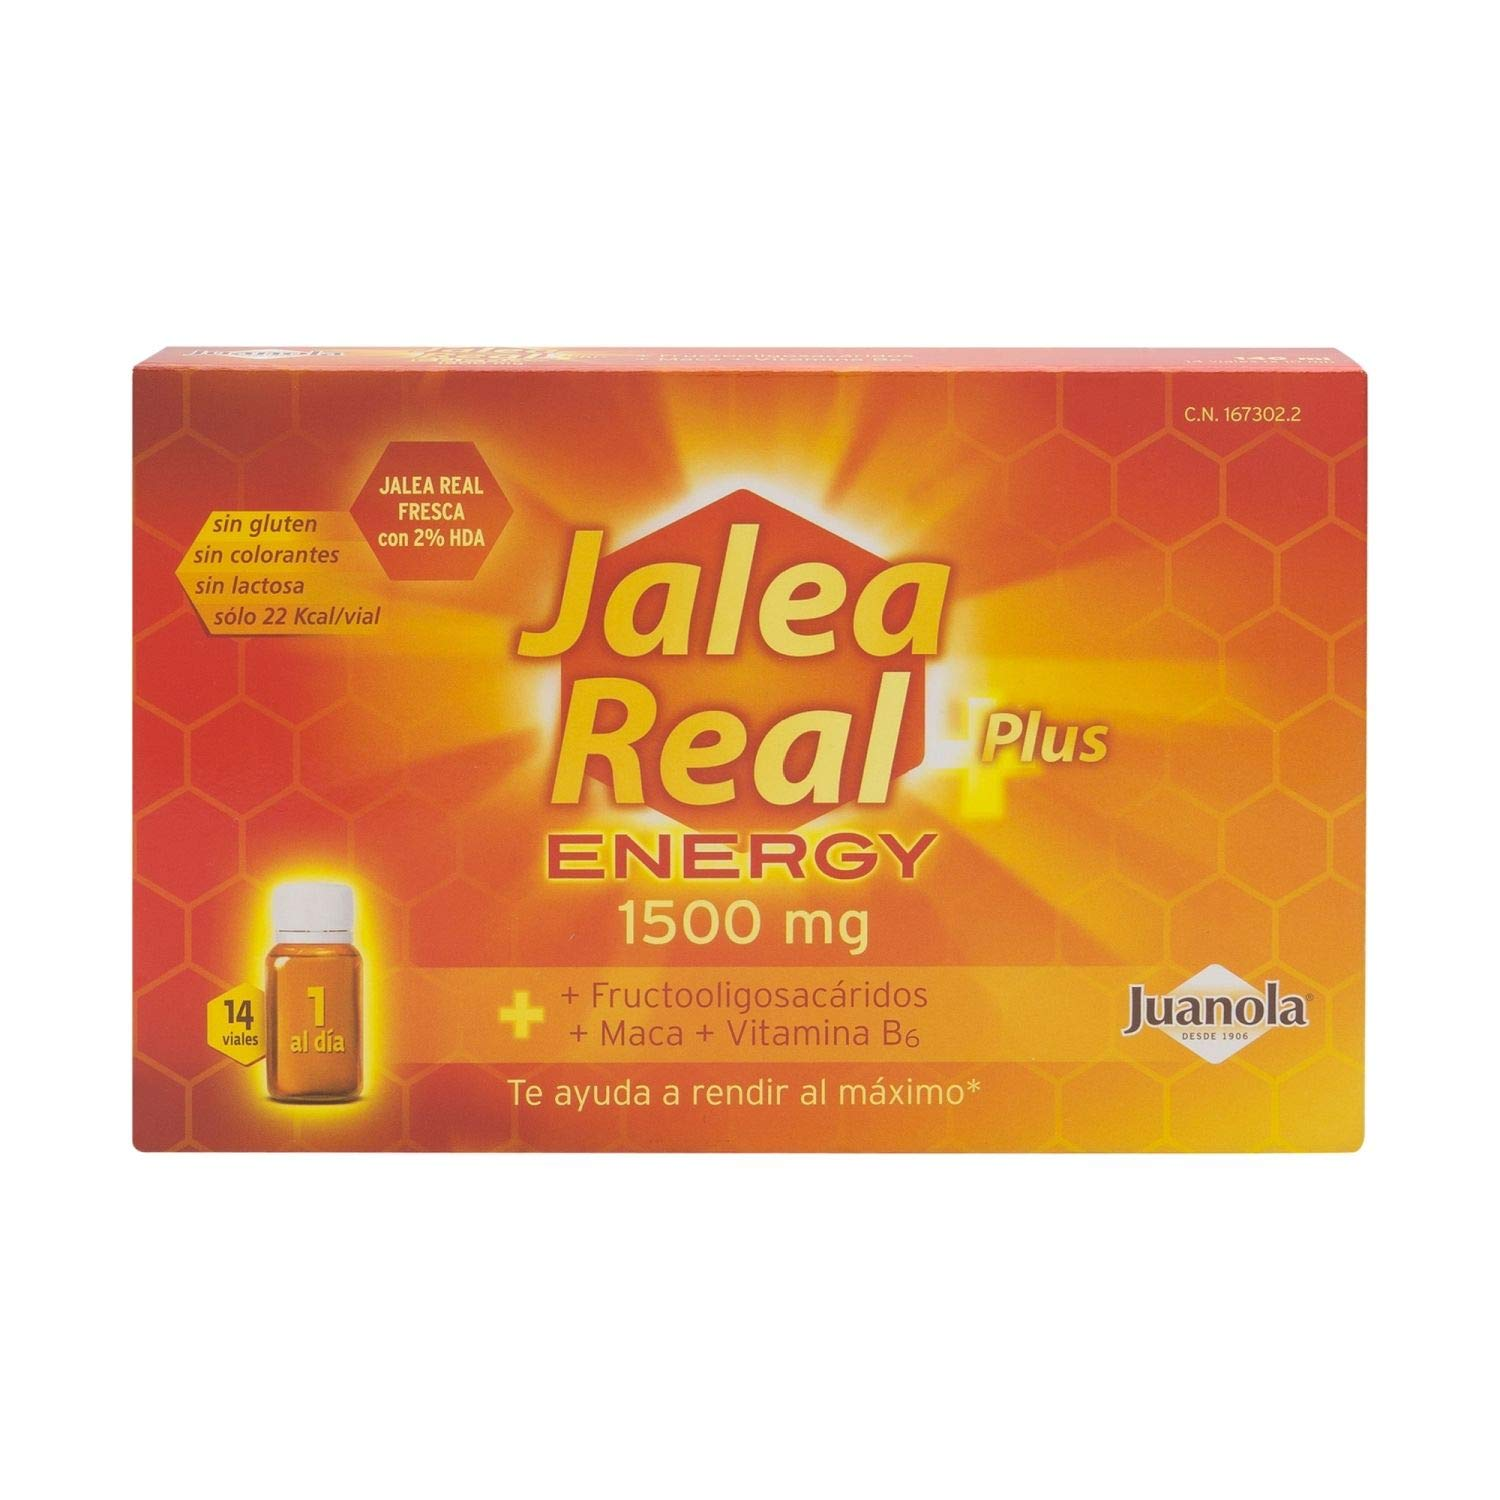 Amazon.com: Juanola Royal Jelly Energy Plus 14 Vials x 10ml - Natural Components - Gluten-Free - Colorants-Free - Lactose-Free - No More Fatigue - Energy ...